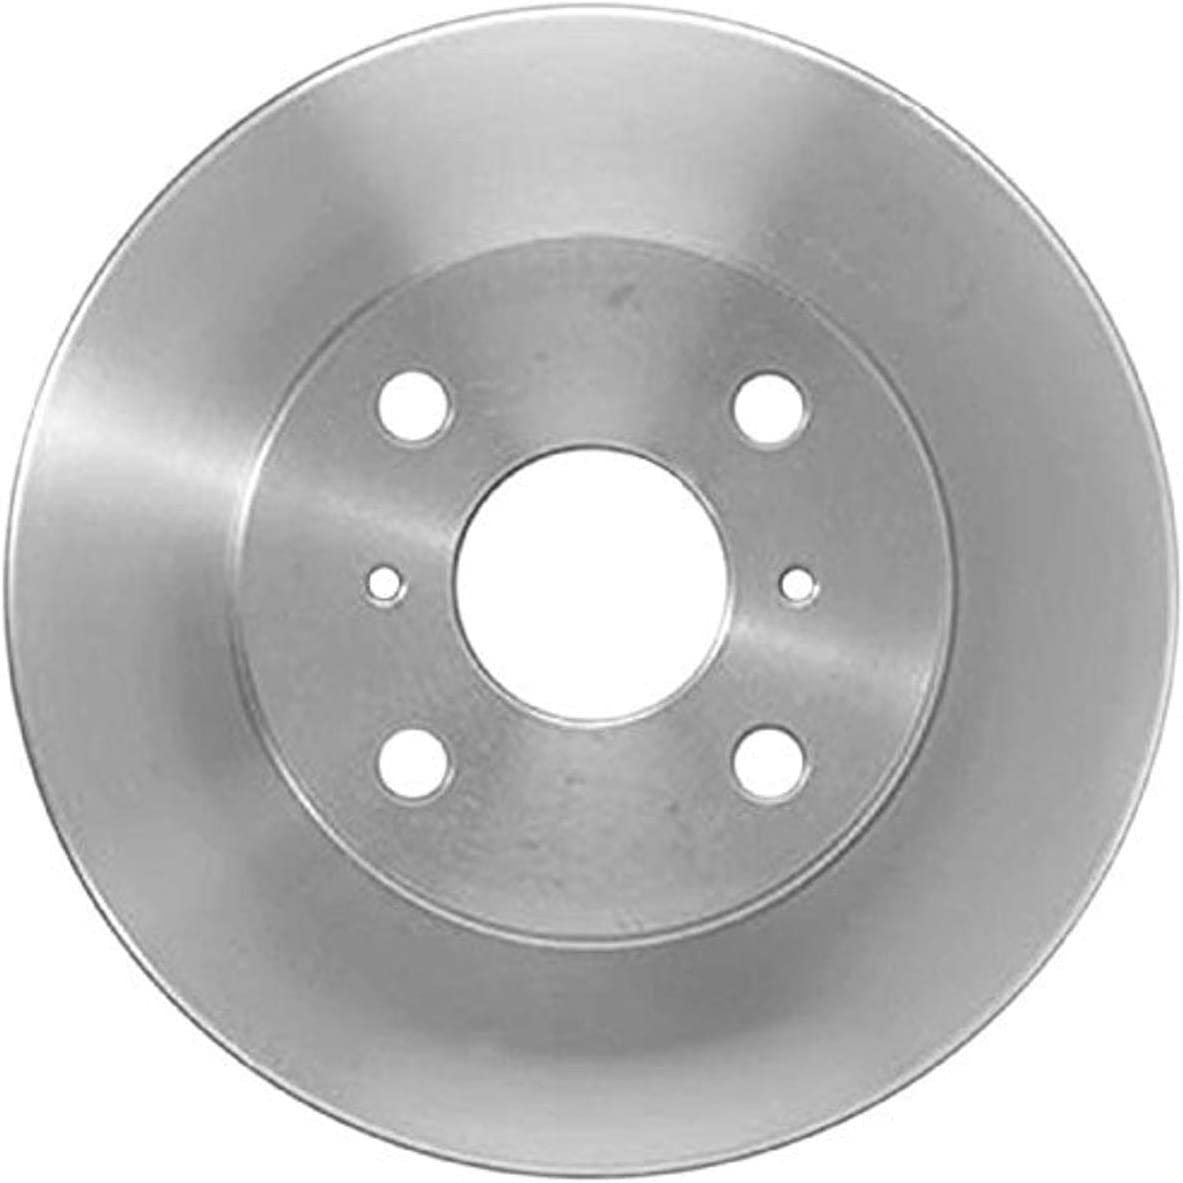 Our shop High material OFFers the best service Bendix Brake PRT5321 Rotor